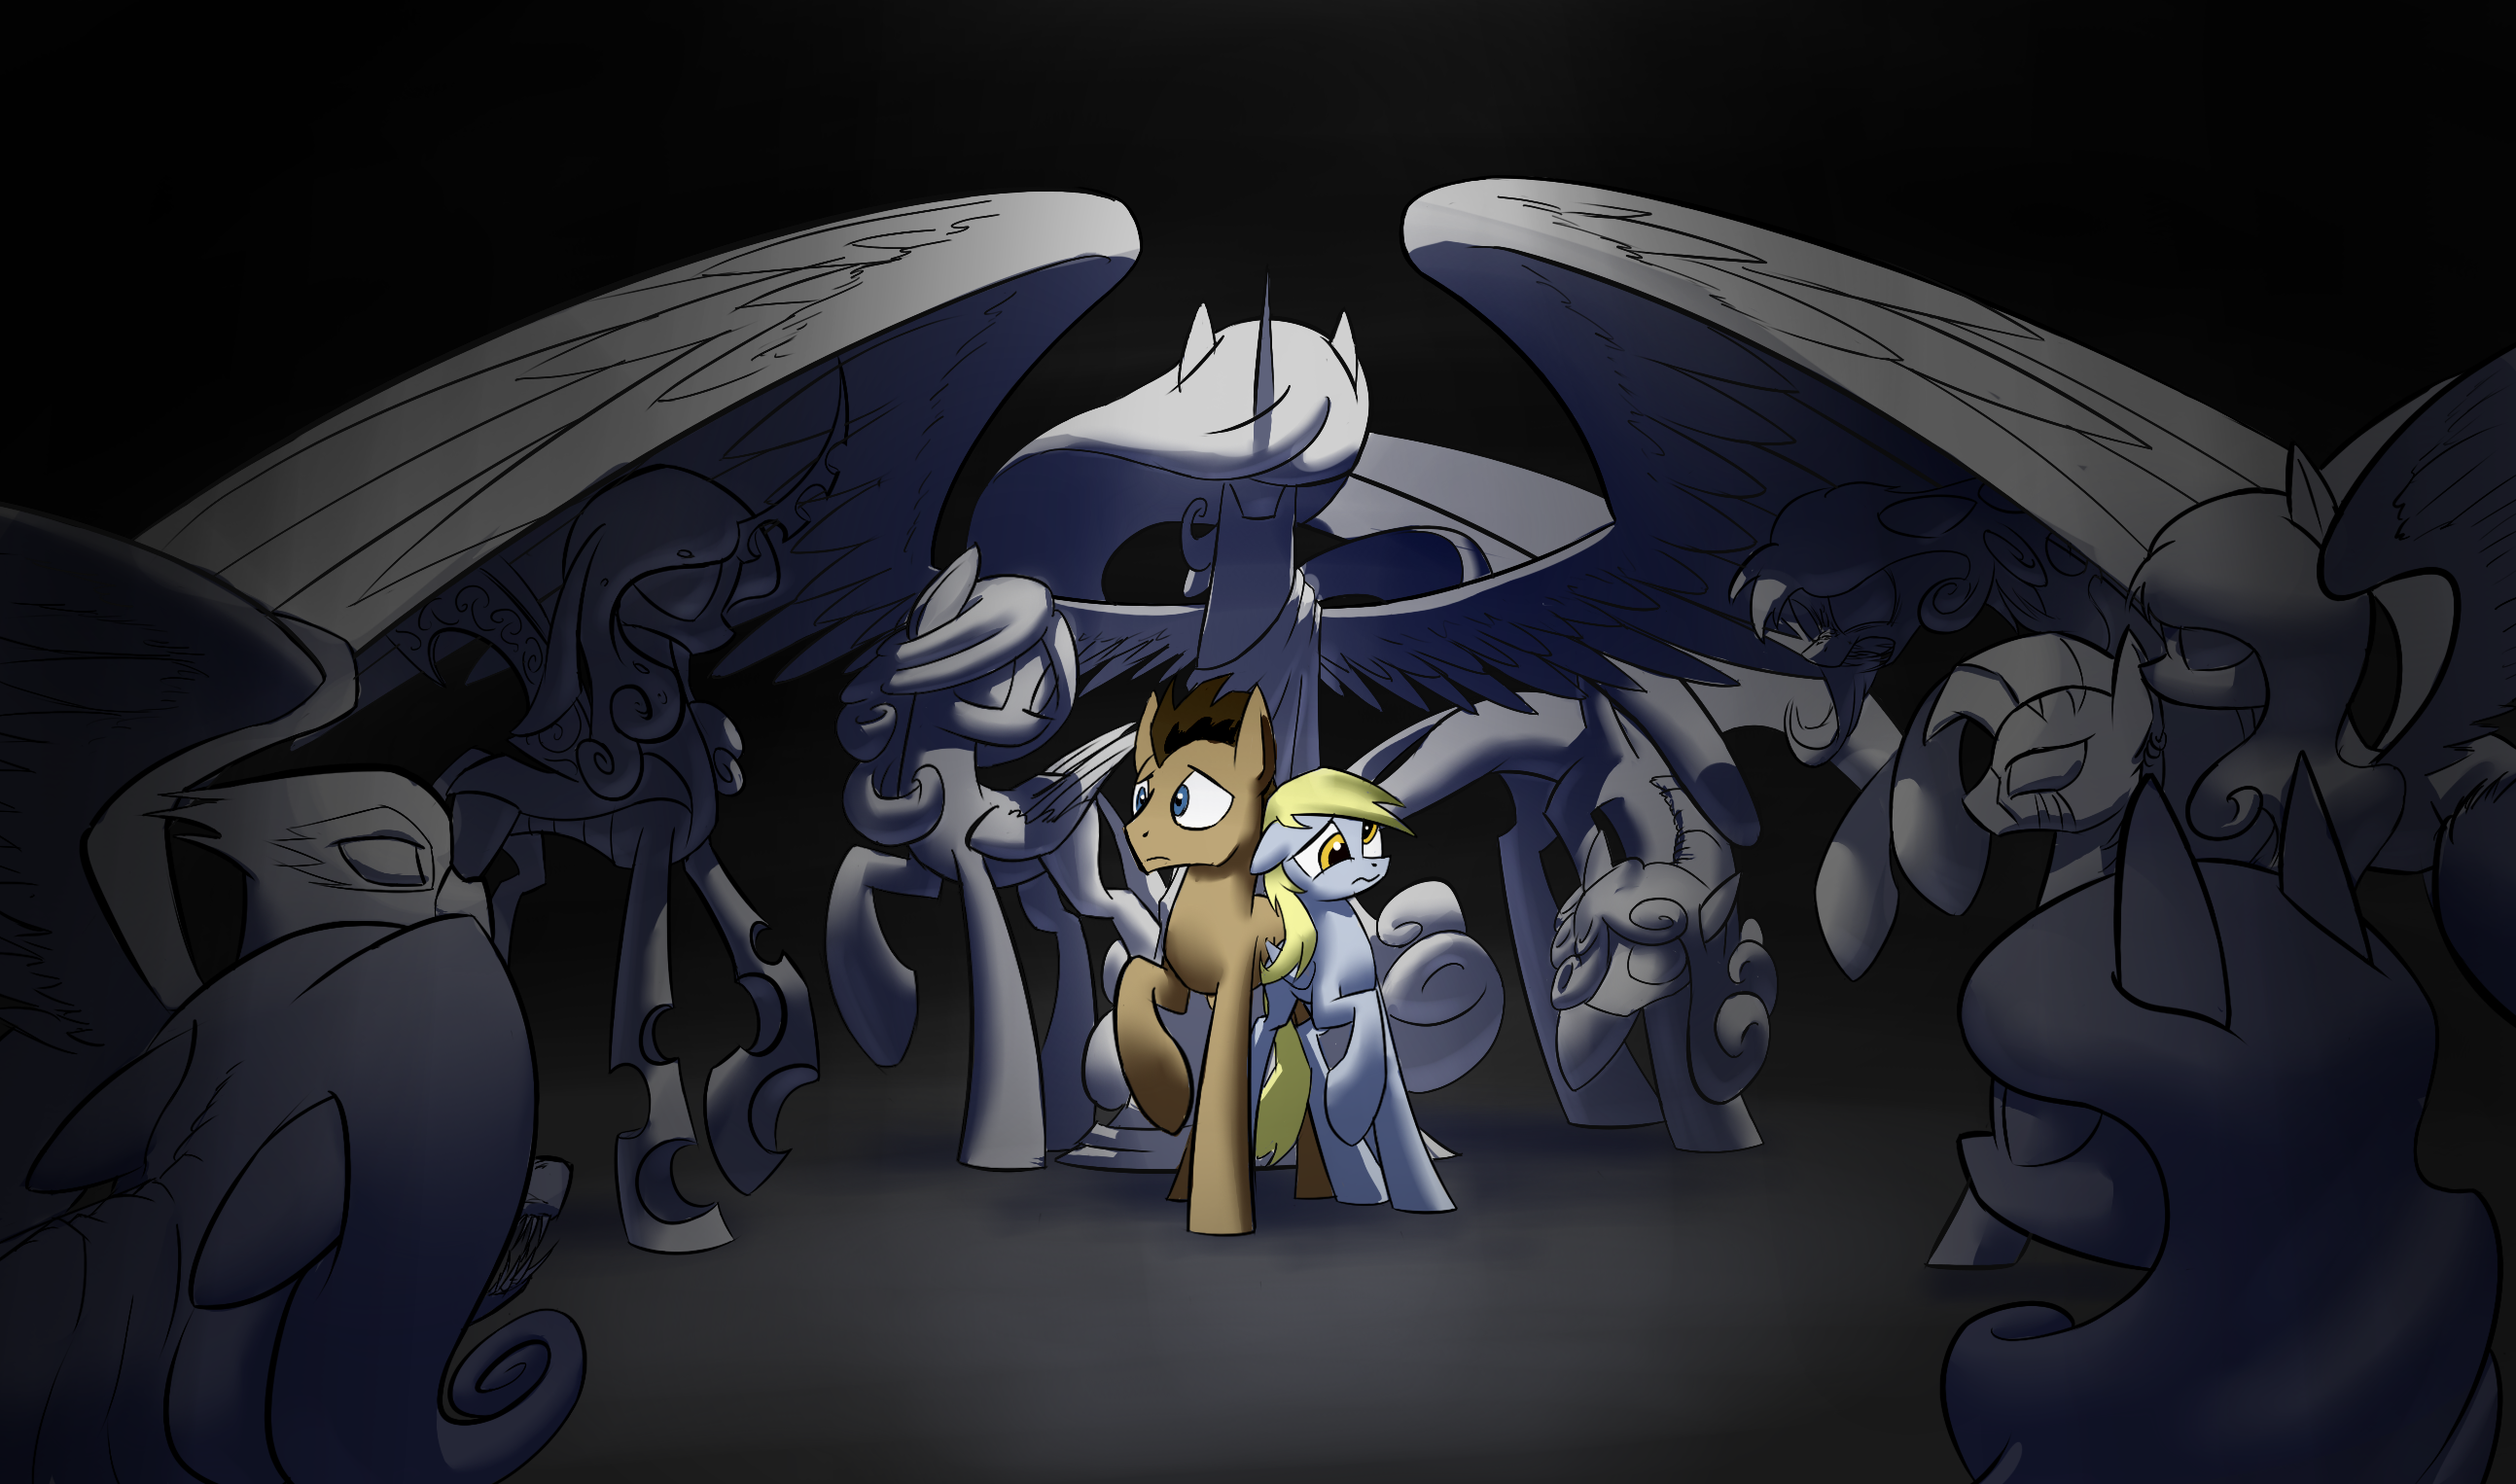 Angels by Underpable